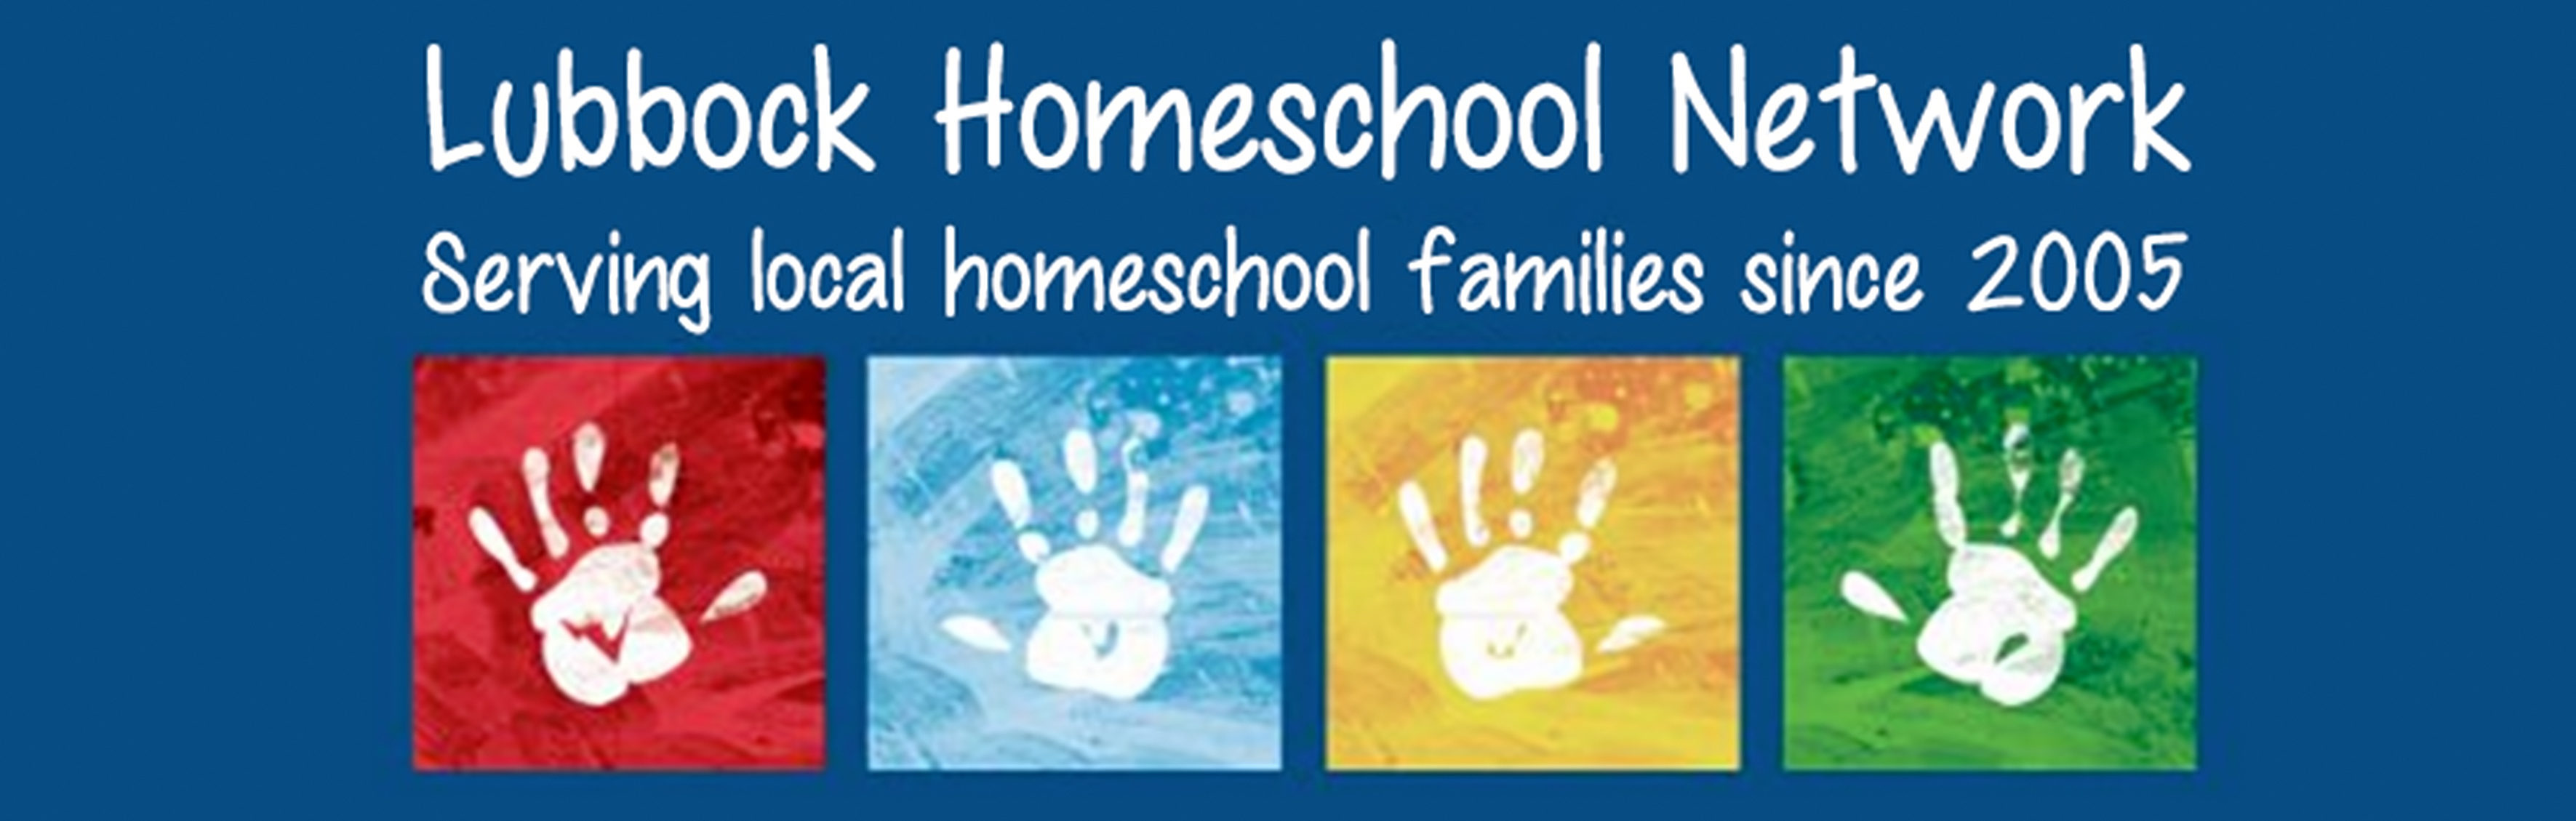 Lubbock Homeschool Network